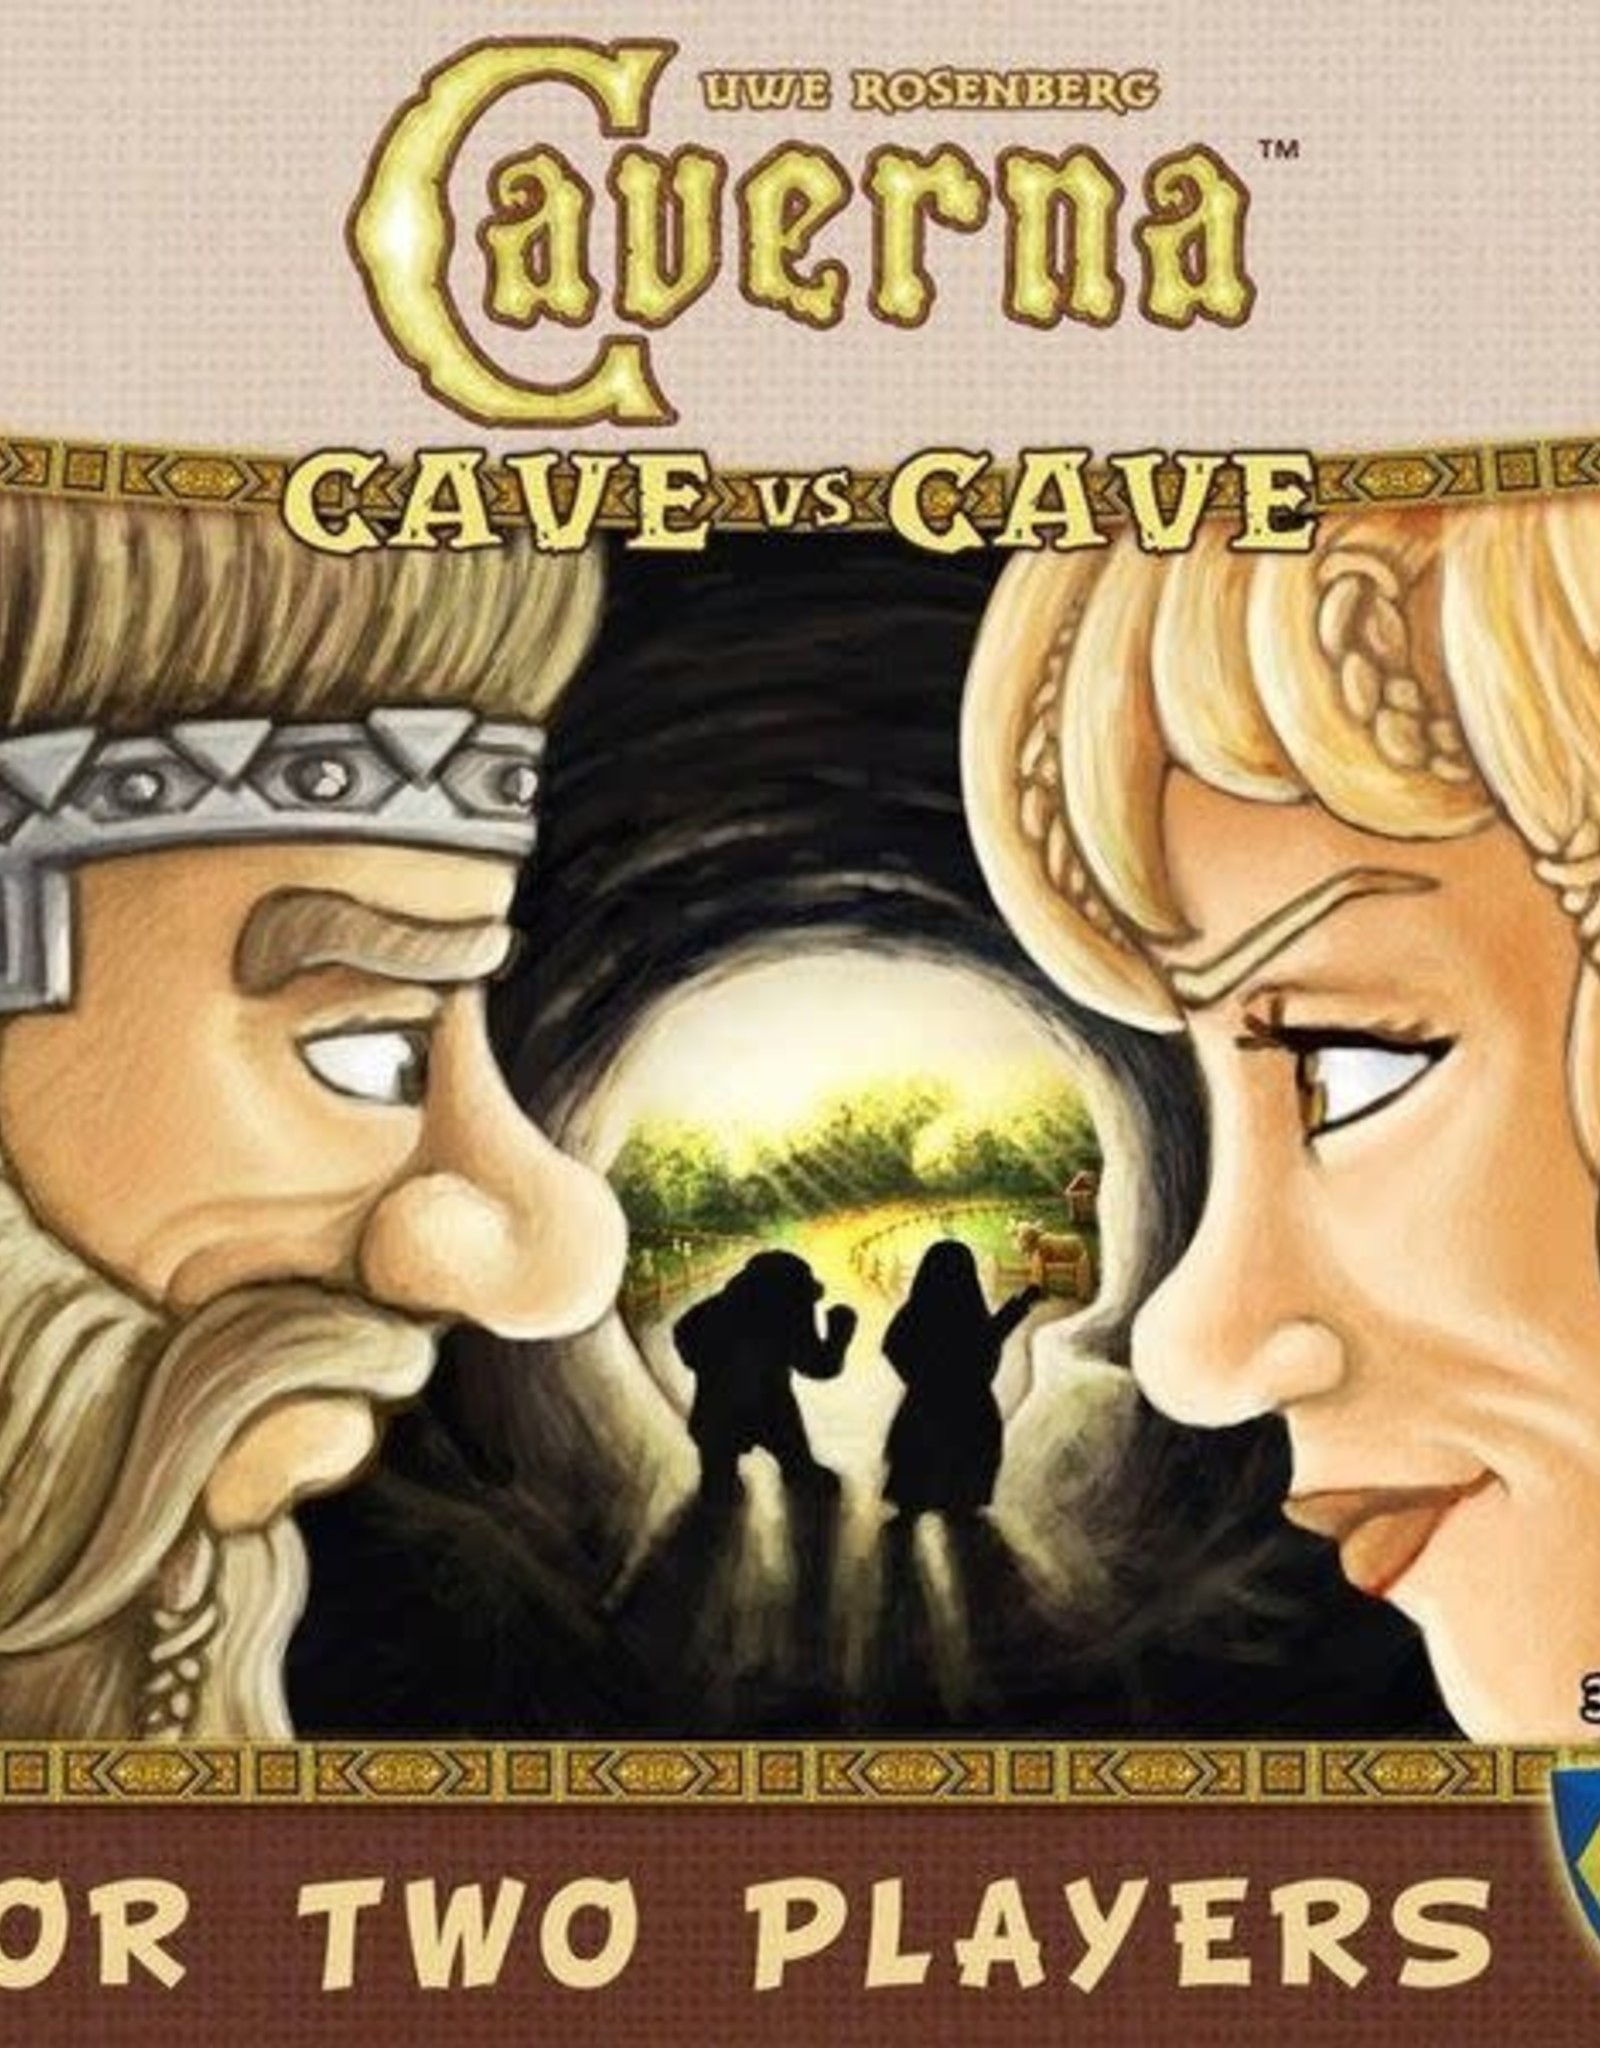 Lookout Games Cave Vs Cave